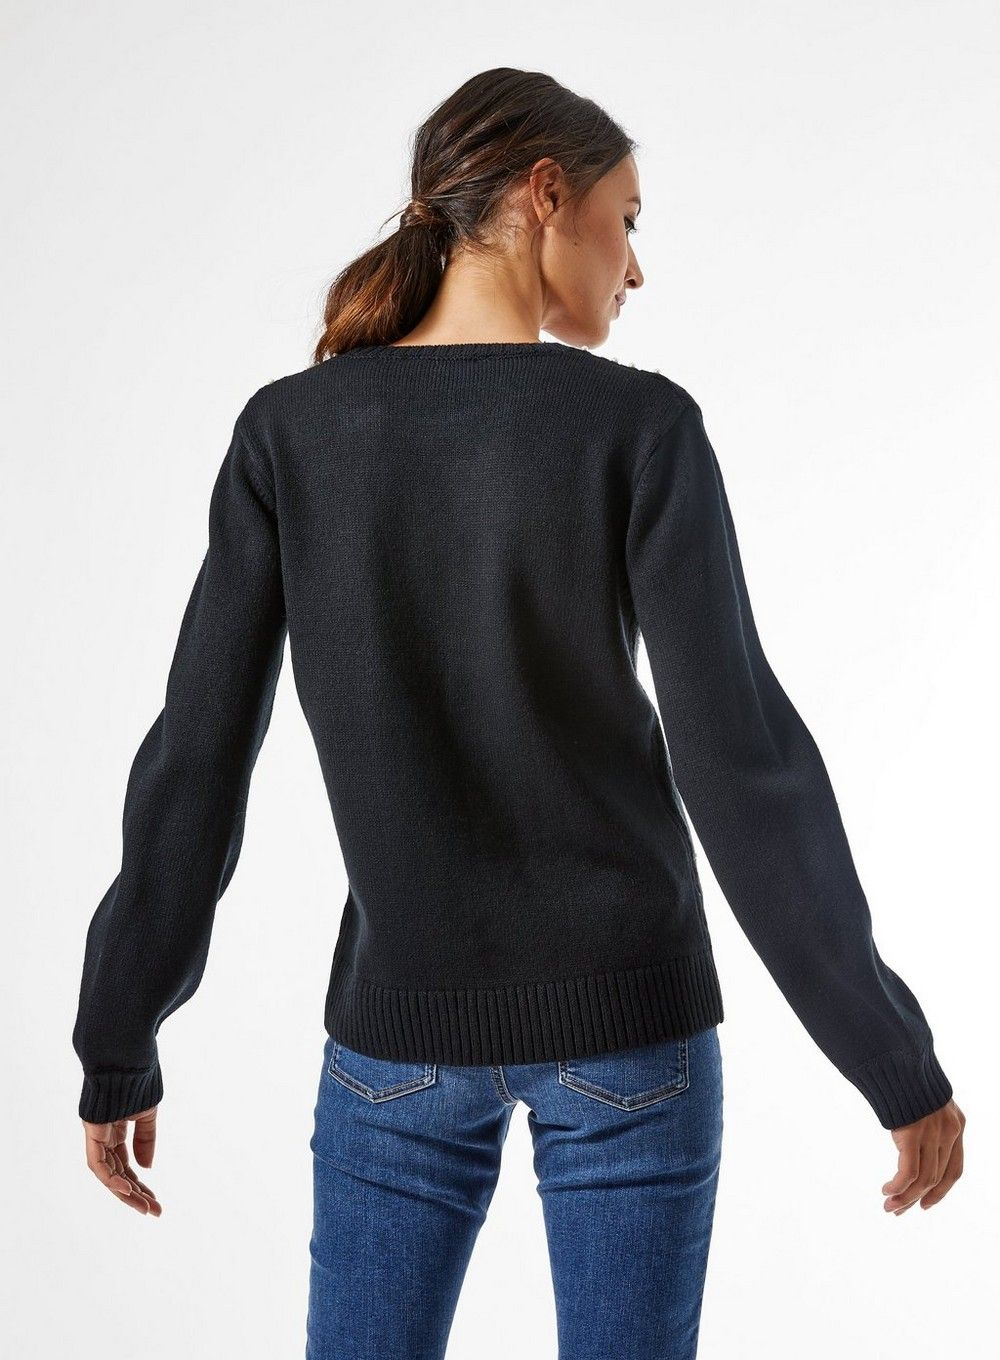 Dorothy Perkins Womens Black All Over Pearl Studded Jumper Sweater Pullover